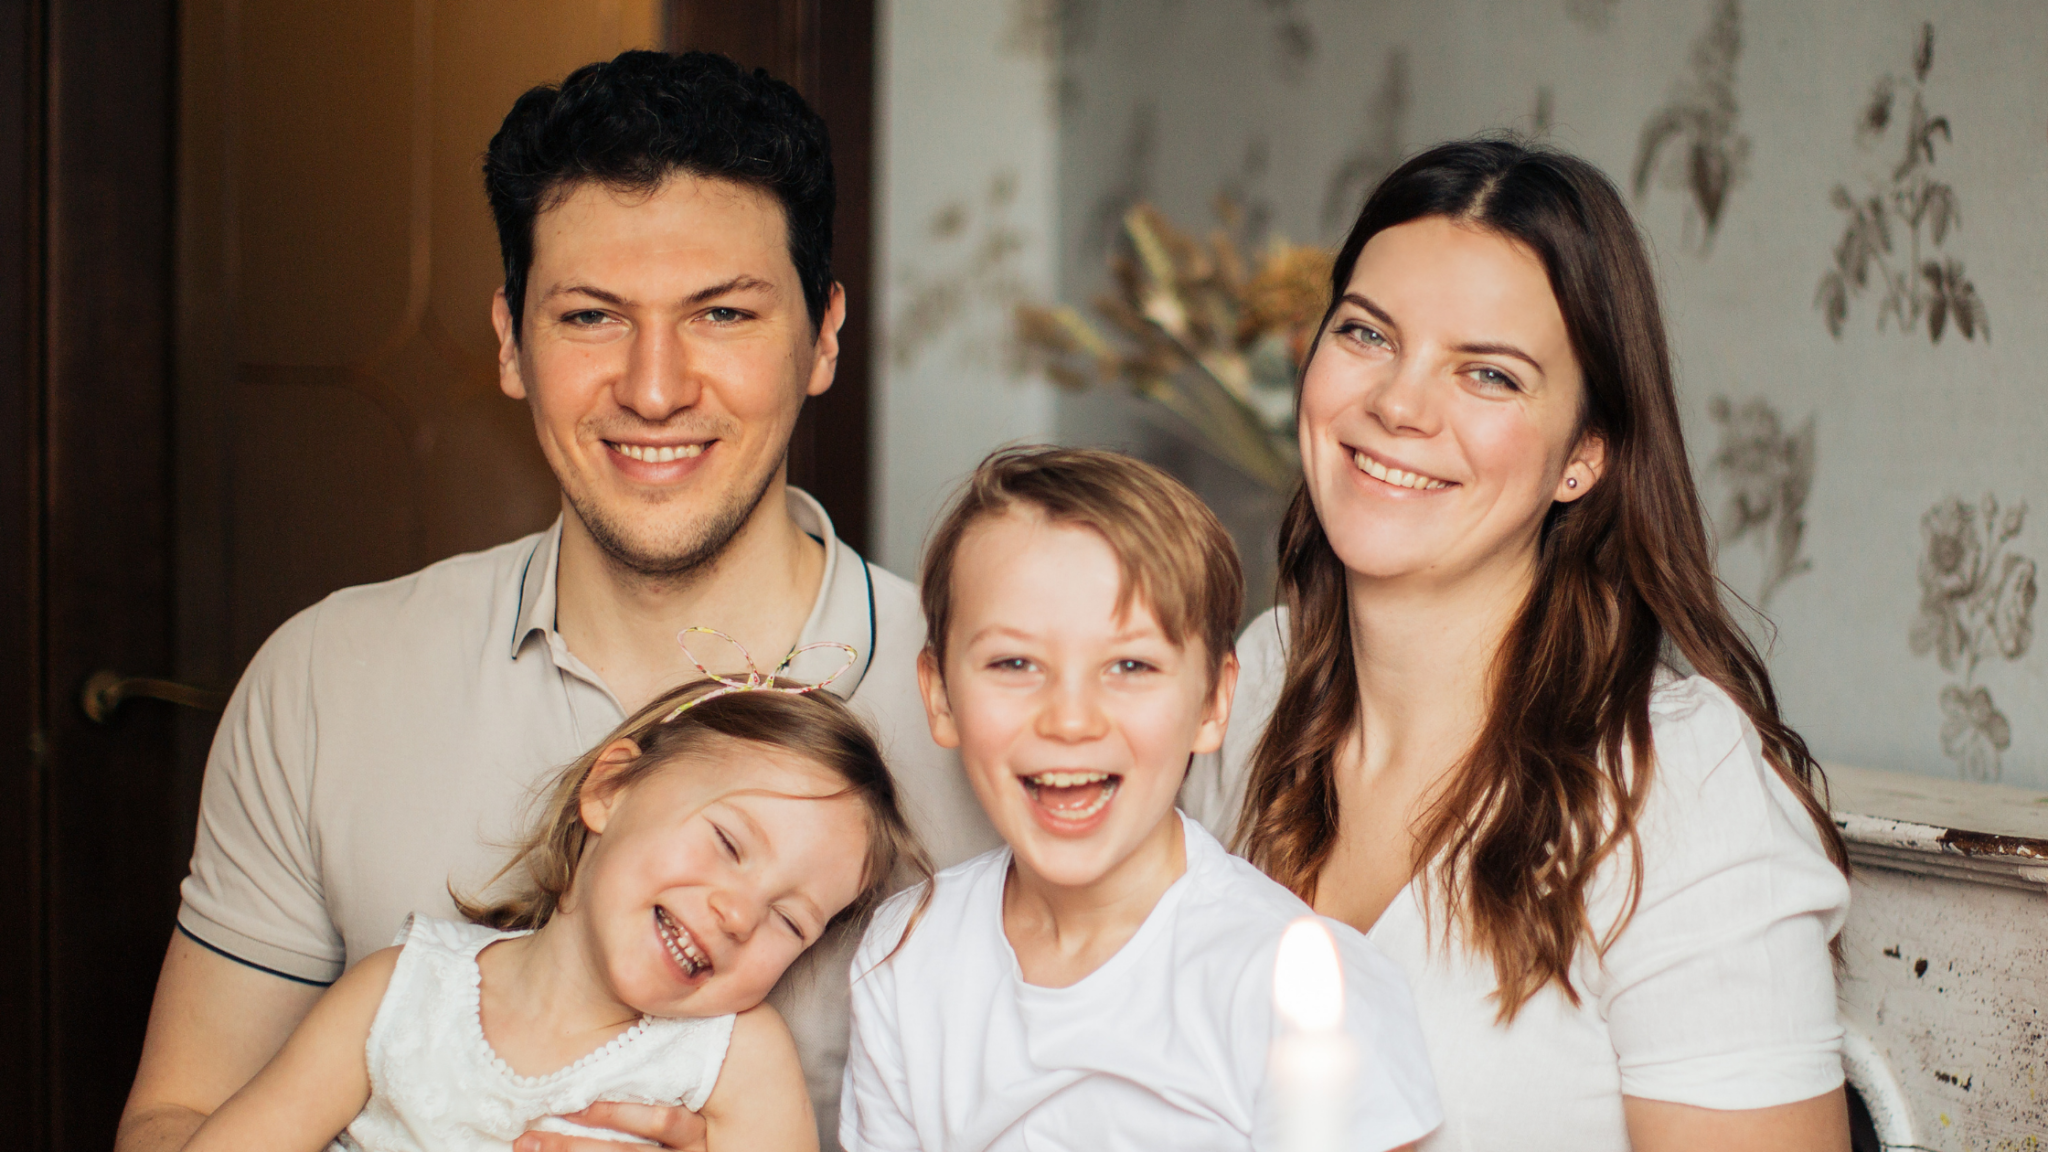 One Family's Journey to Reduce ADHD Symptoms Naturally